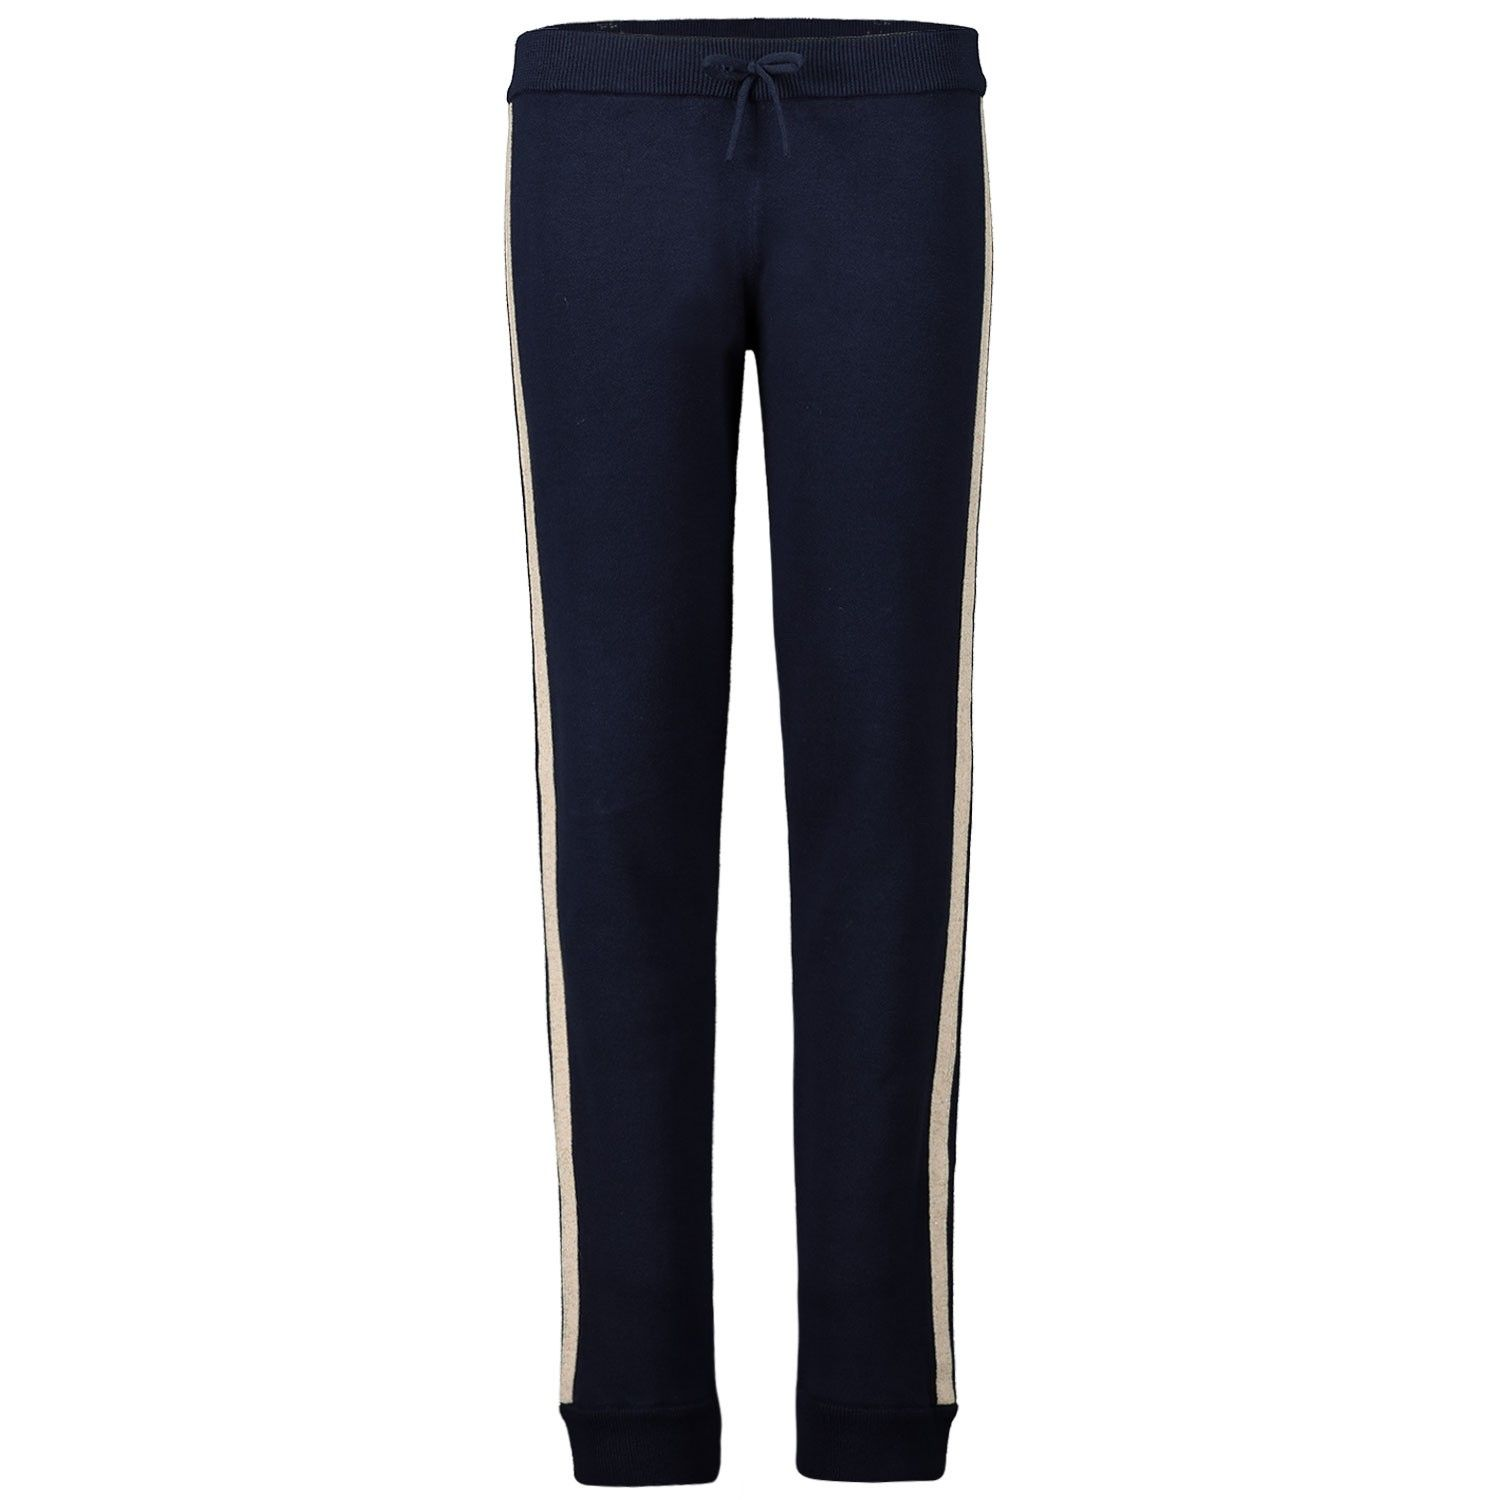 Picture of Chloé C14579 kids jeans navy